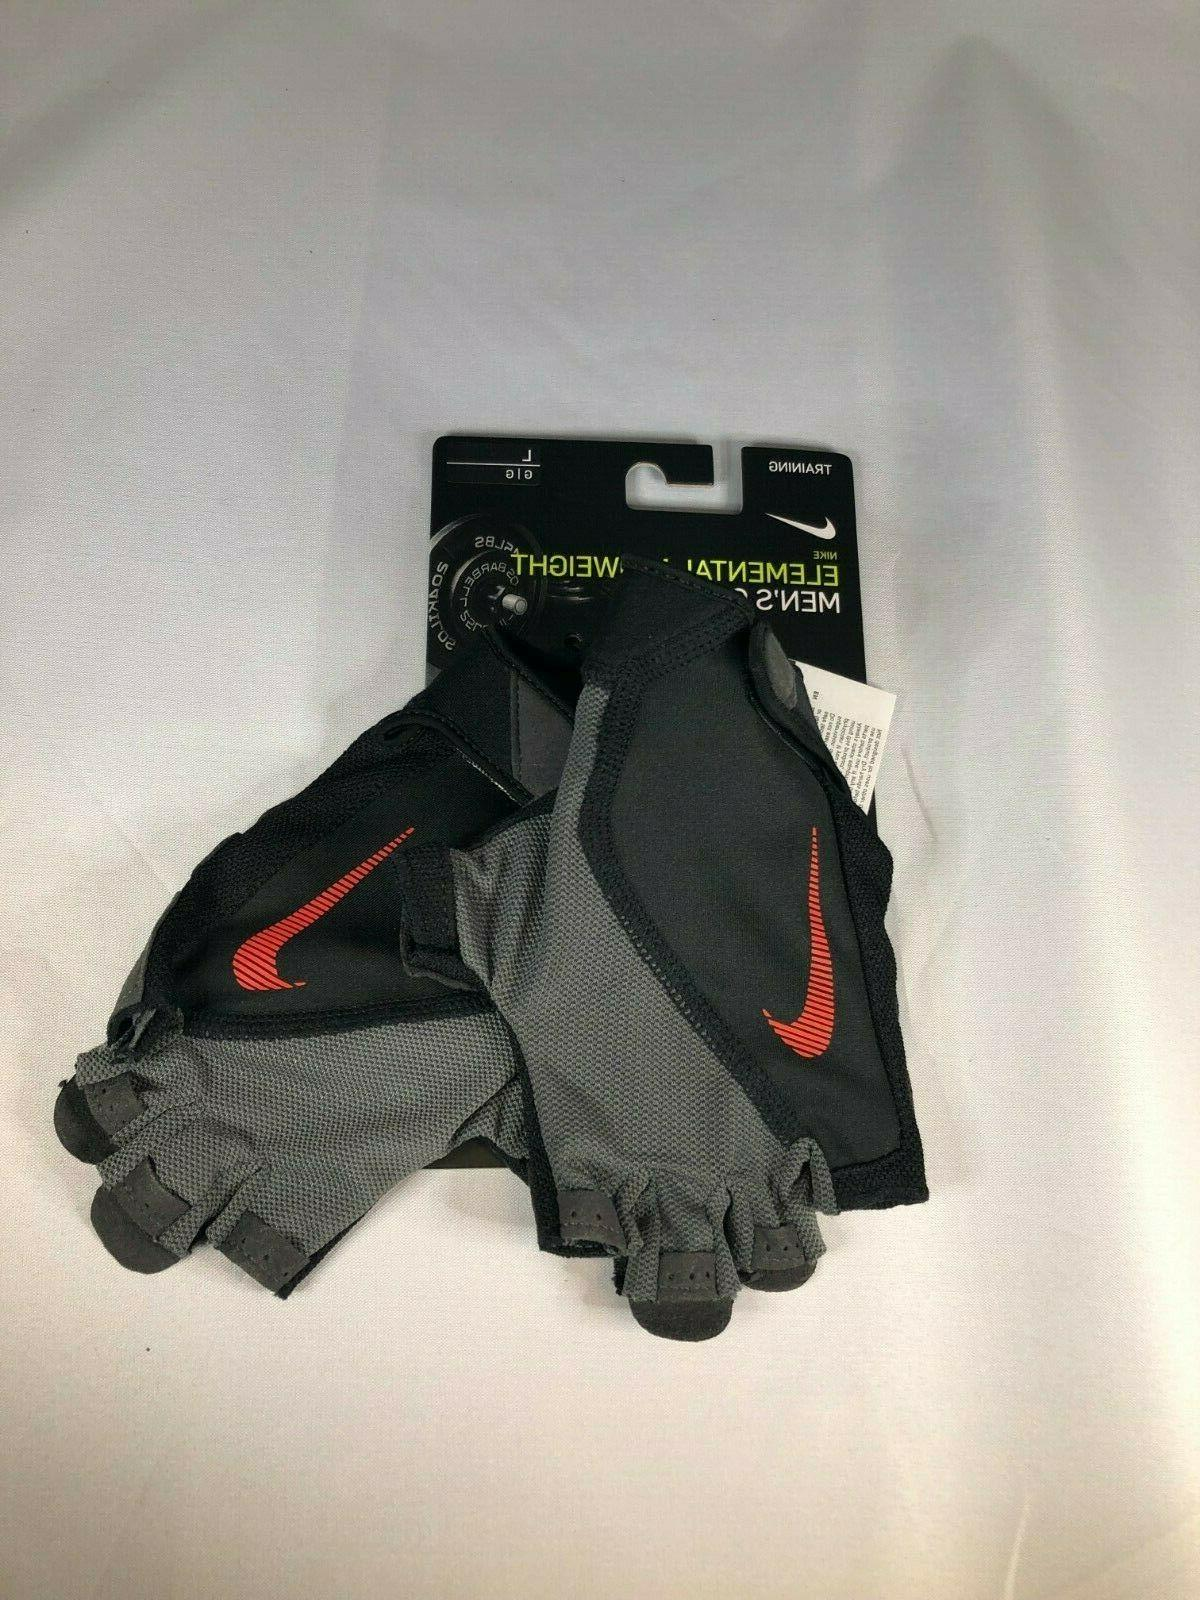 new mens elemental midweight weightlifting training gloves